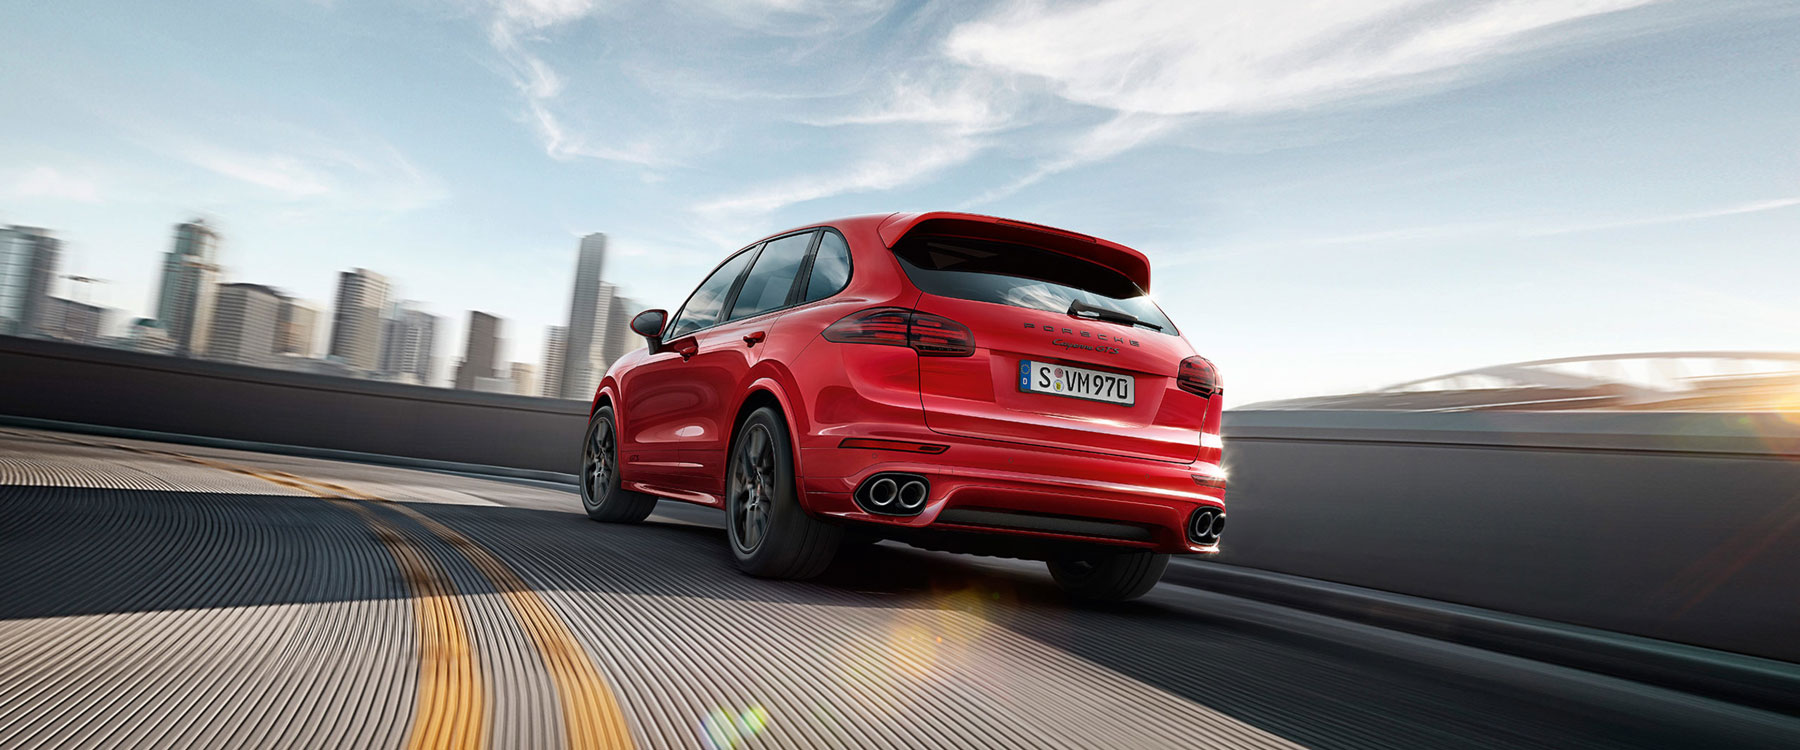 the 2018 porsche cayenne gts suv porsche fremont. Black Bedroom Furniture Sets. Home Design Ideas